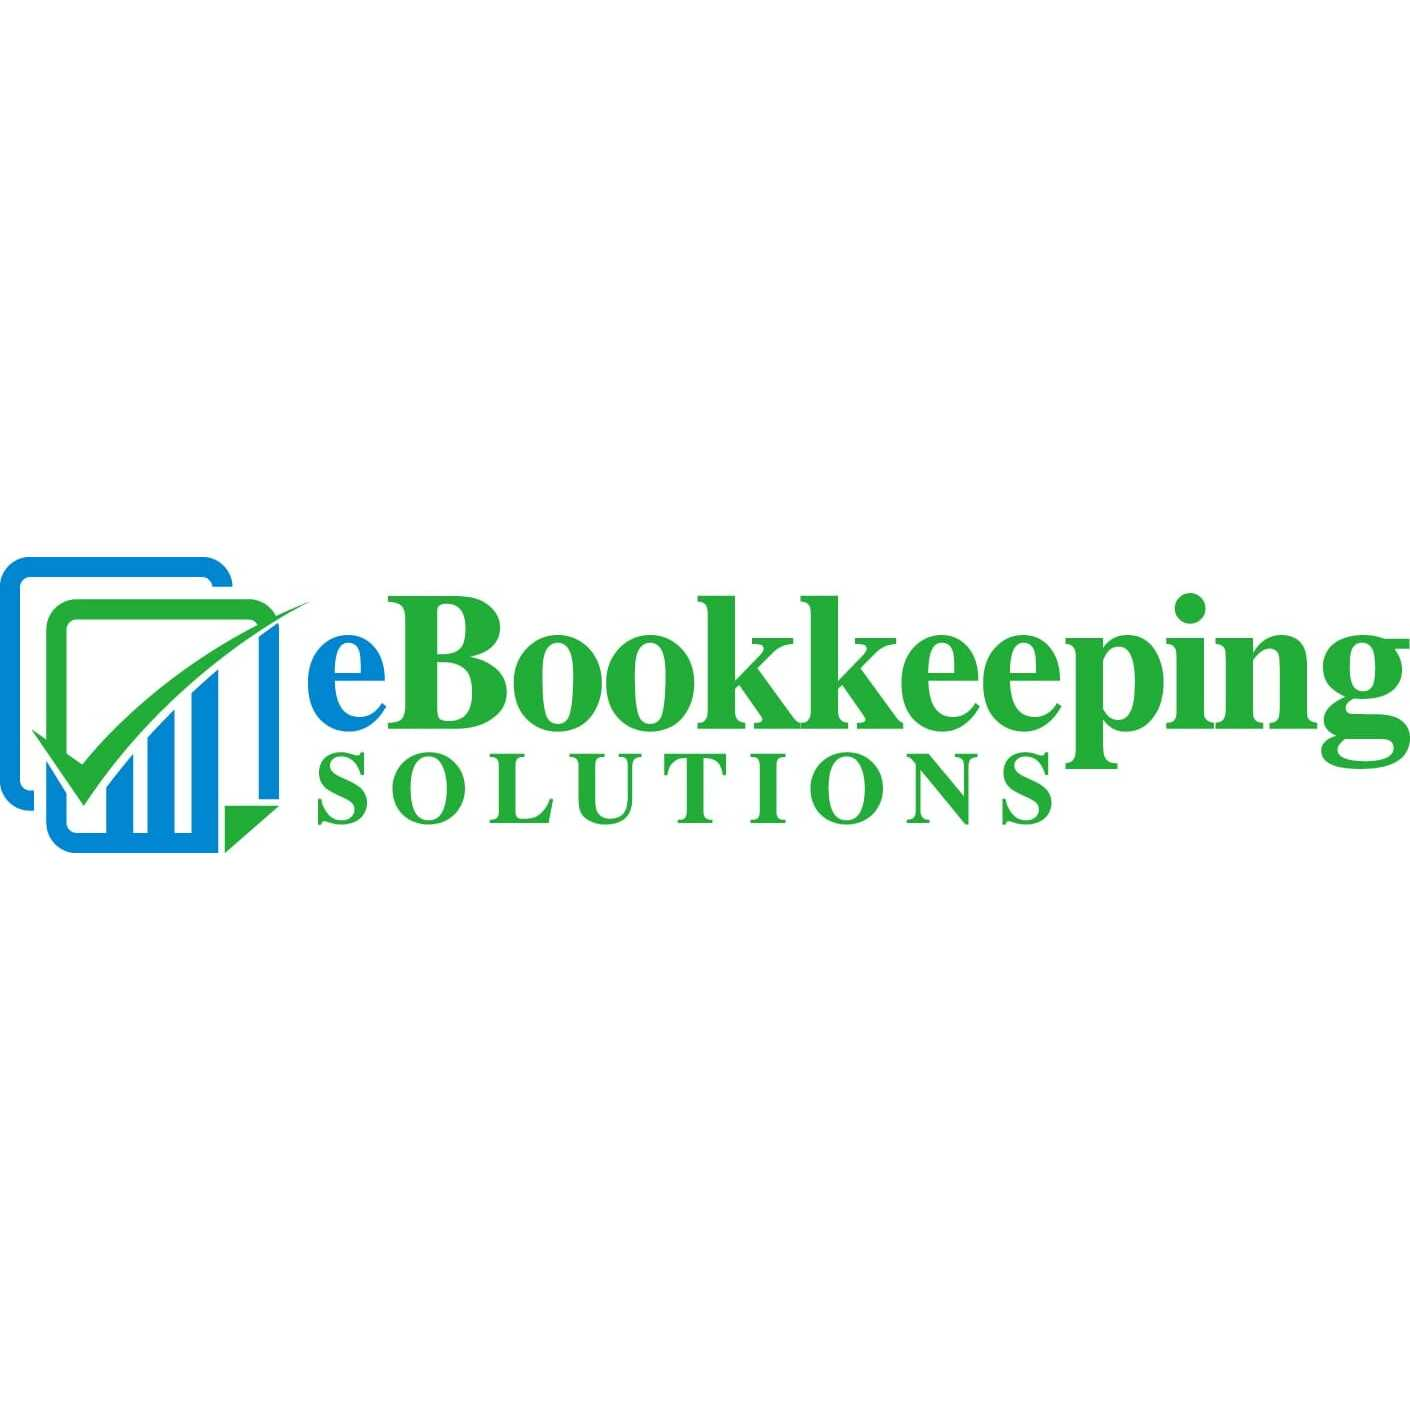 eBookkeeping Solutions